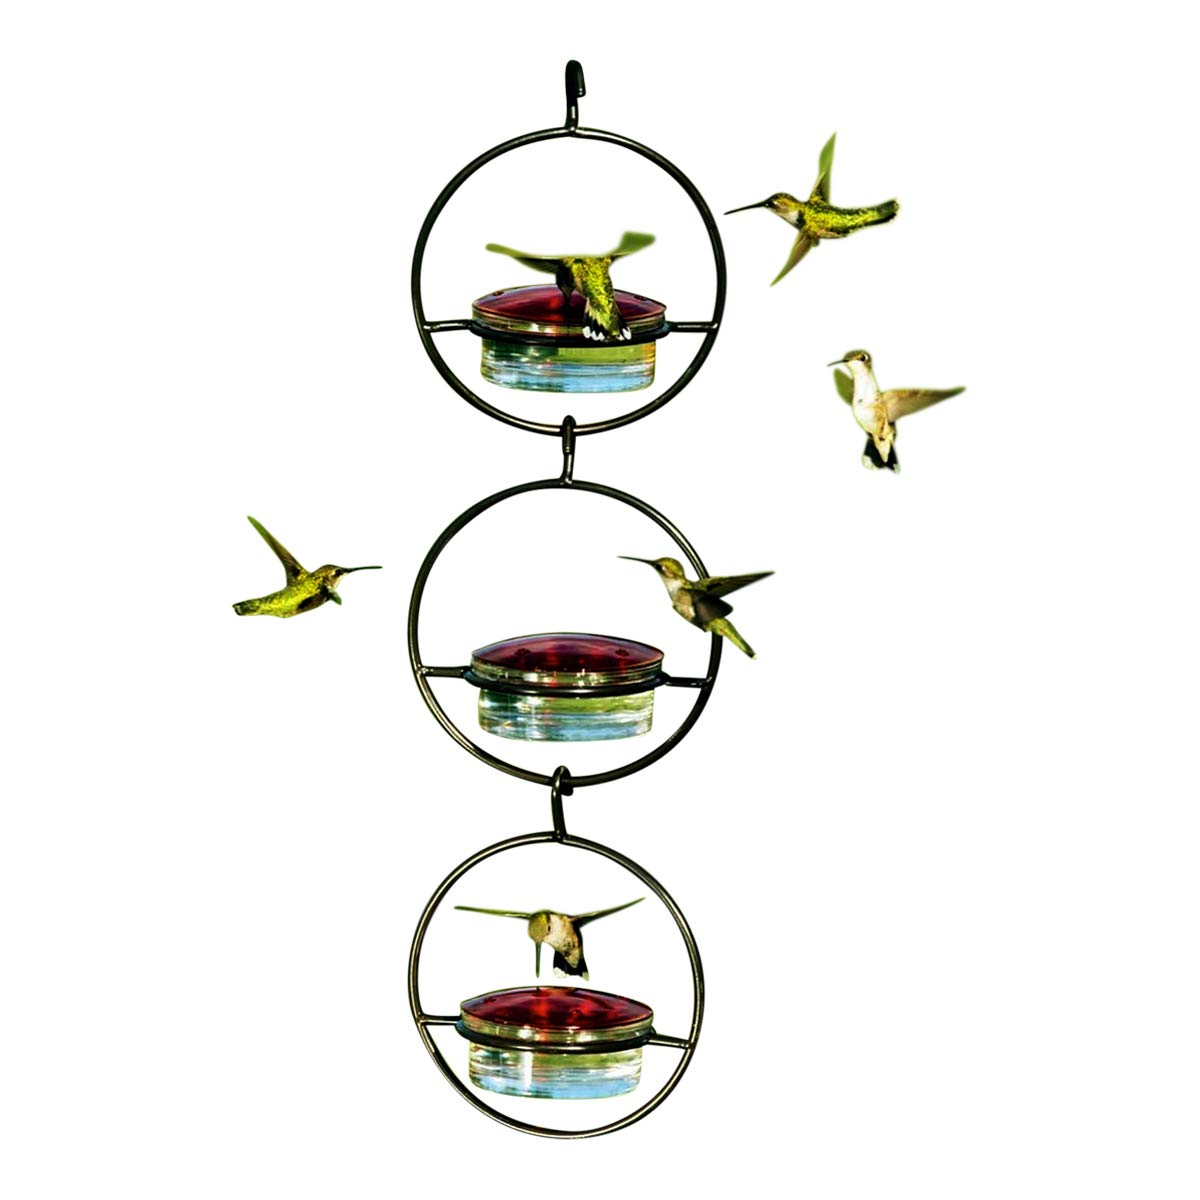 3 Awesome G425VM Sphere Glass Hummingbird Wild Bird Feeders for Nectar, Mealworms and Birdseed. Romantic Decor & More